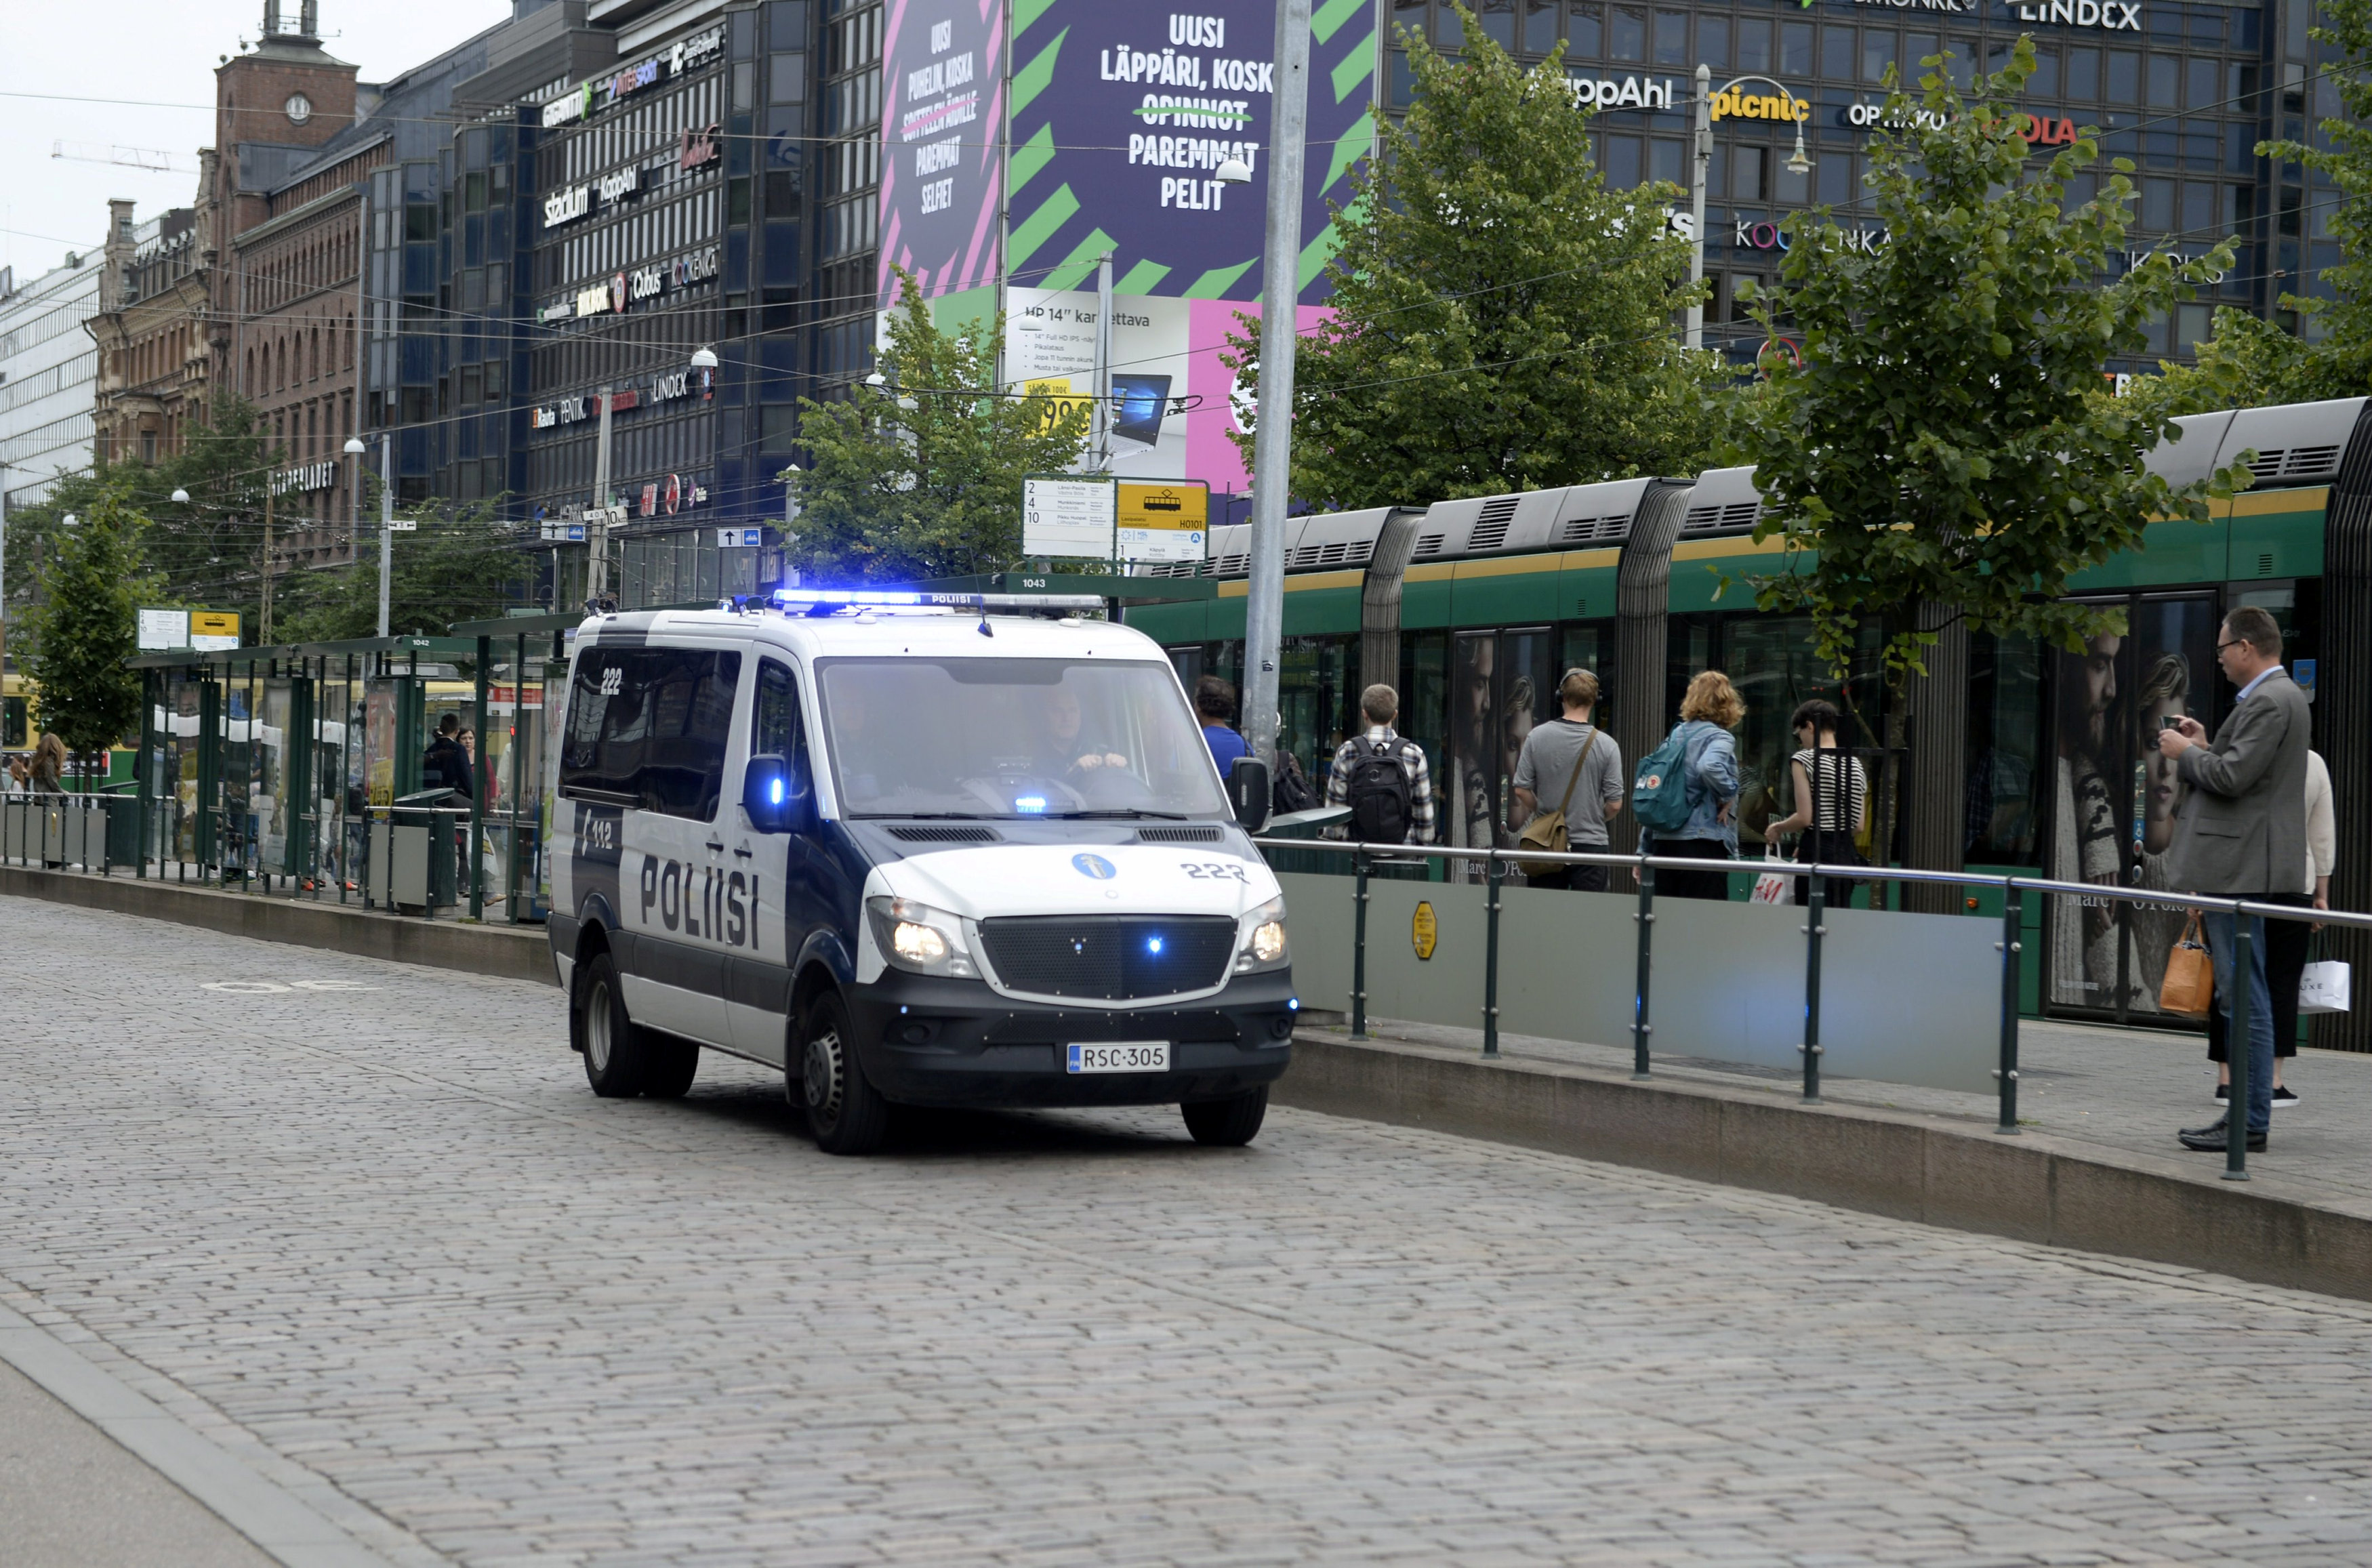 Finnish police patrol the streets, after stabbings in Turku, in Central Helsinki, Finland August 18, 2017. LEHTIKUVA/Linda Manner via REUTERS